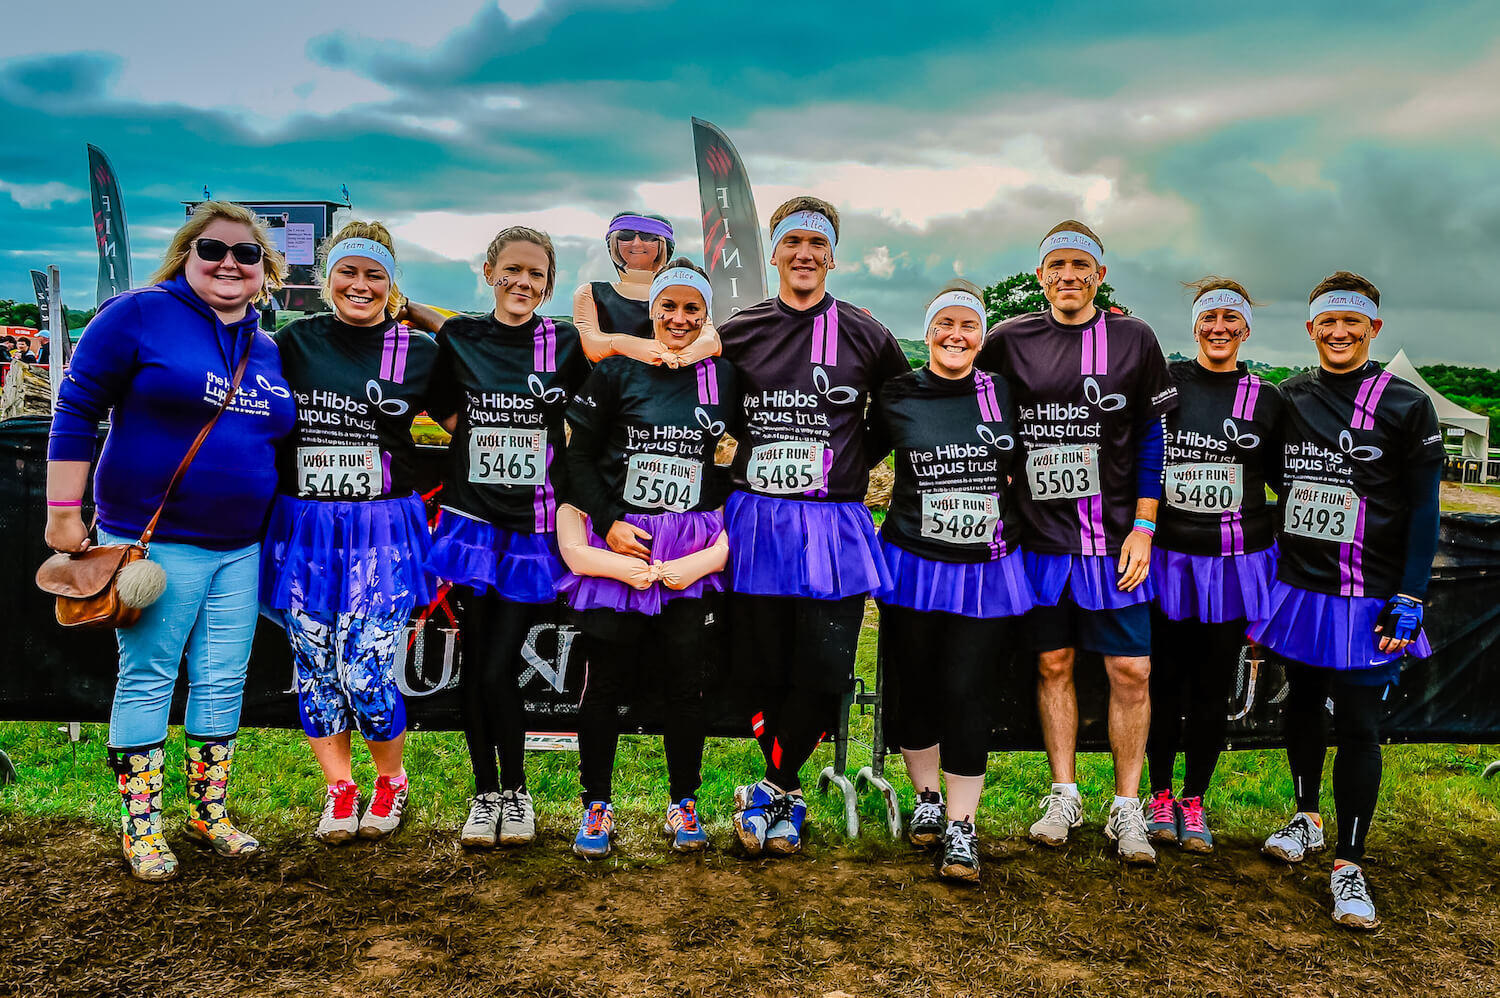 Team Alice - The Hibbs Lupus Trust Award Blog